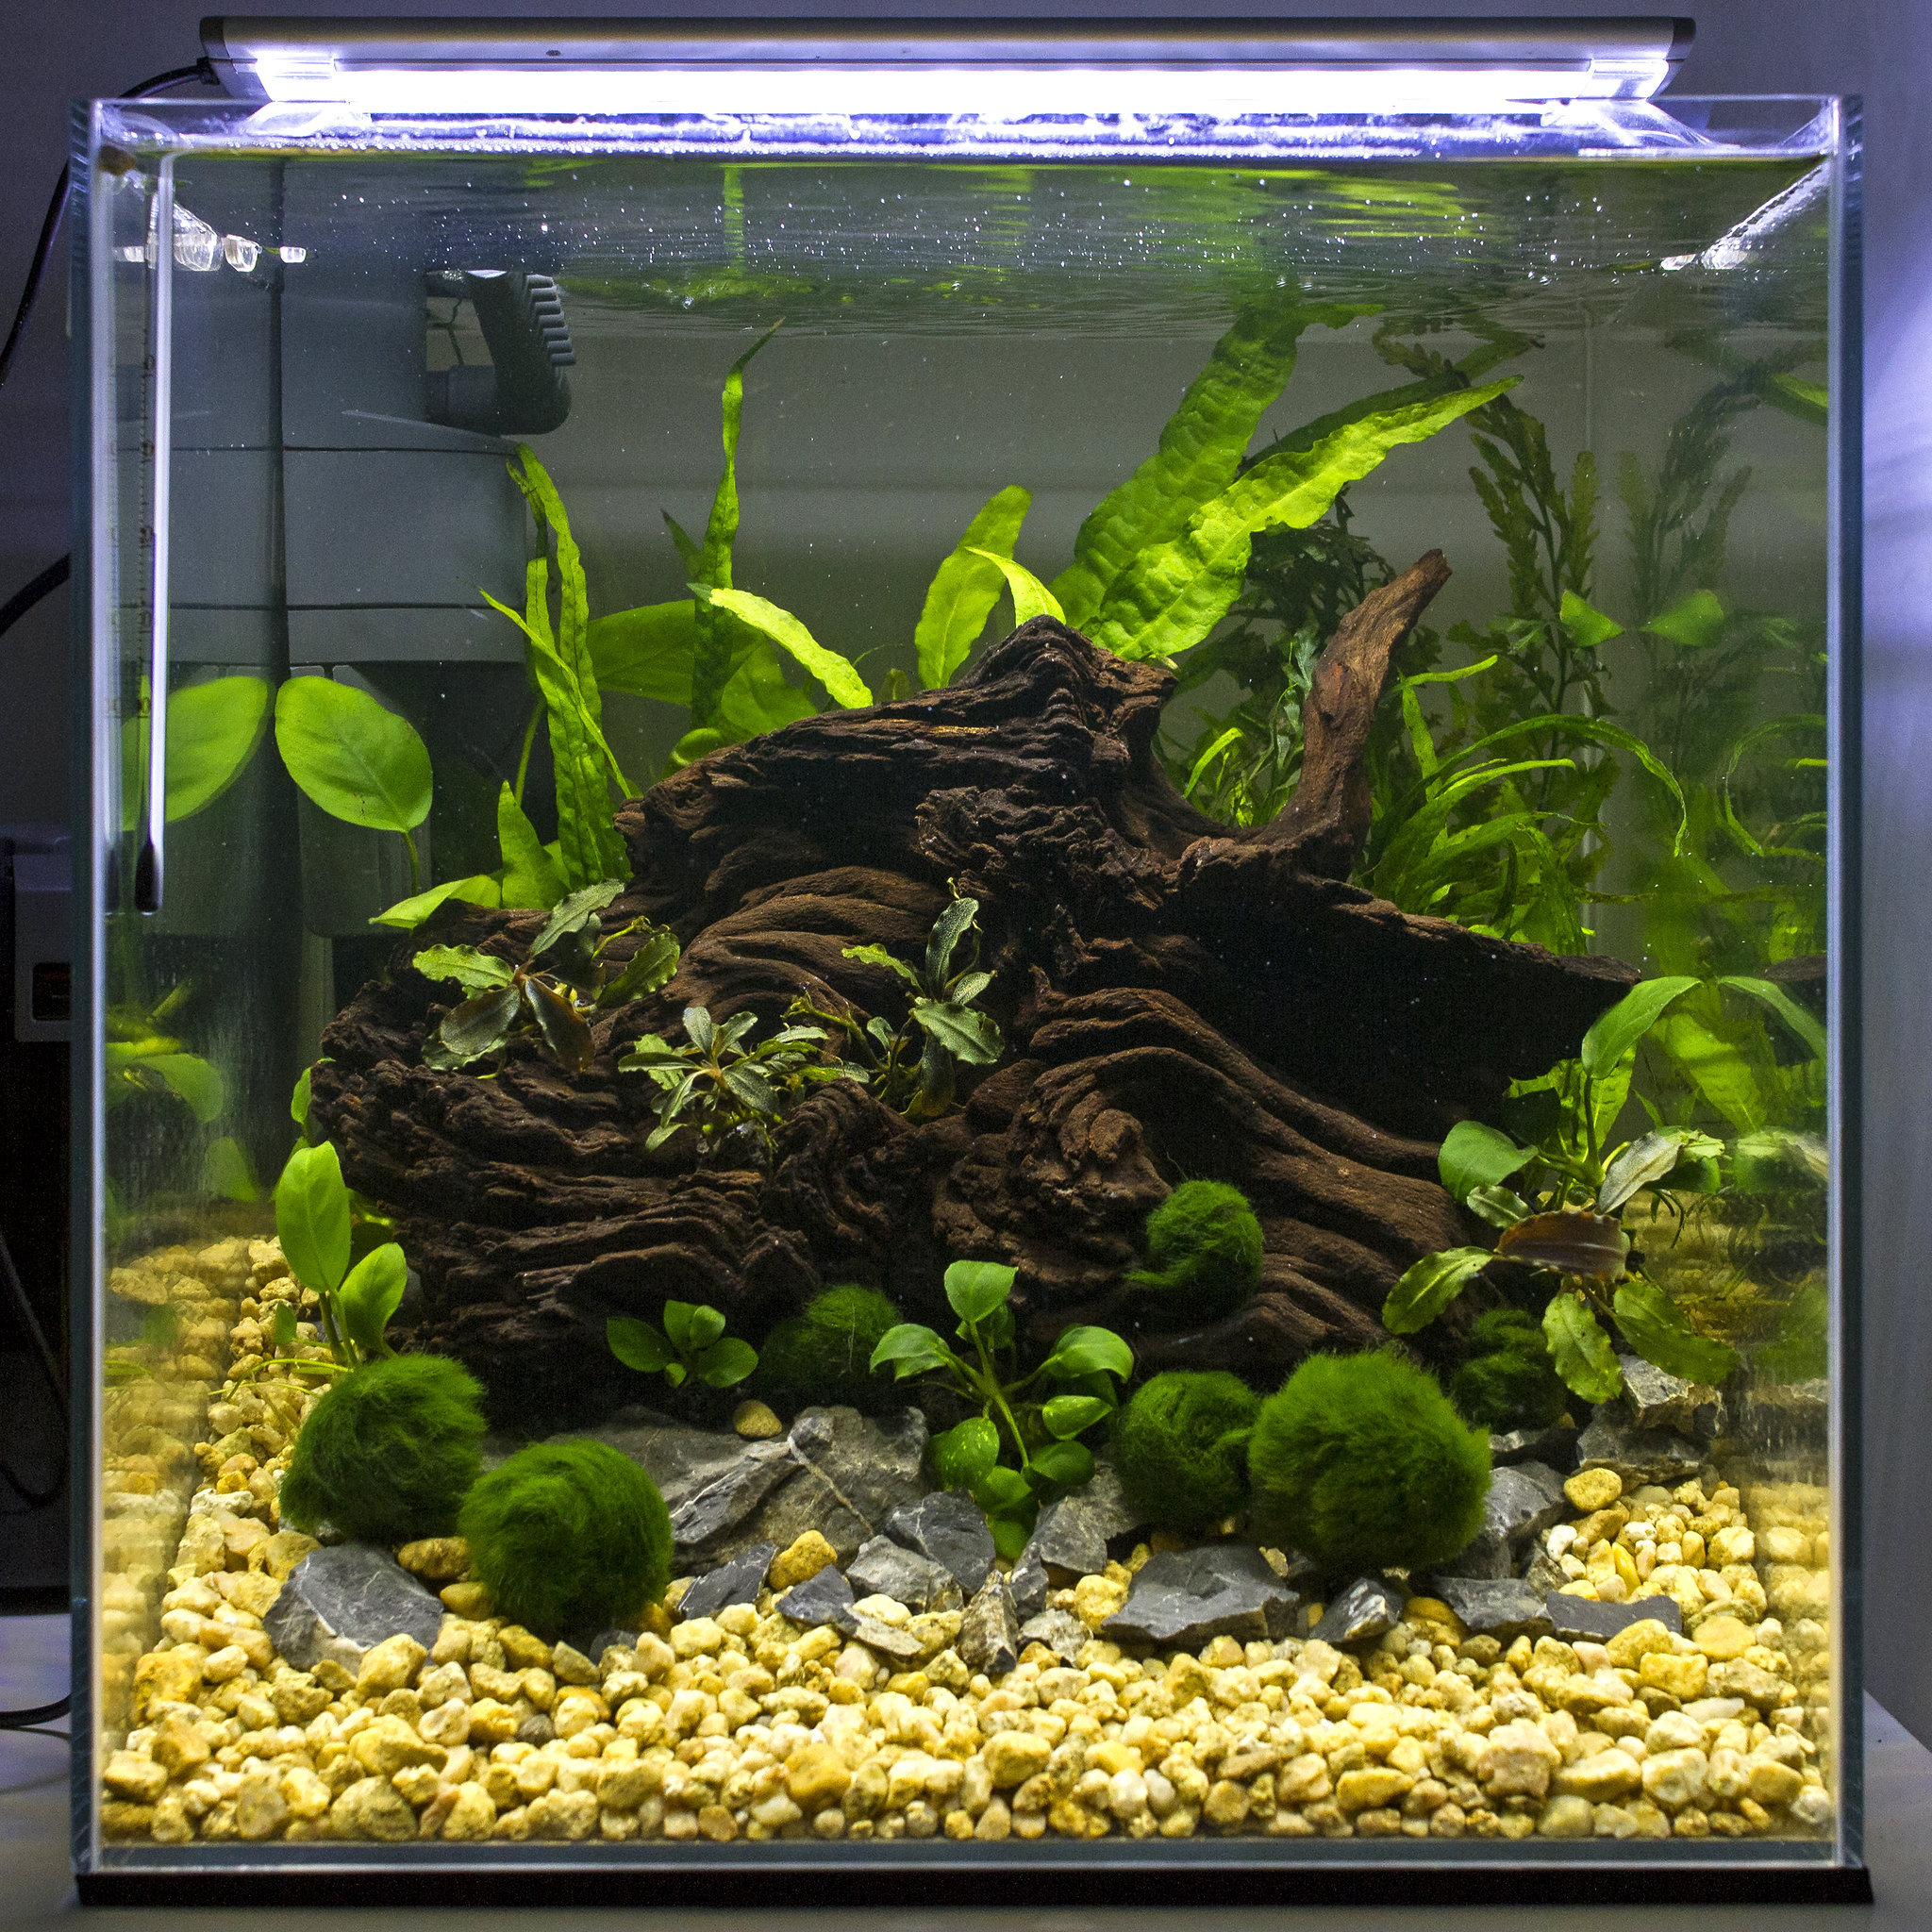 Marvelous Low Tech 30cm Cube Aquascape By Colm Doyle, On Flickr